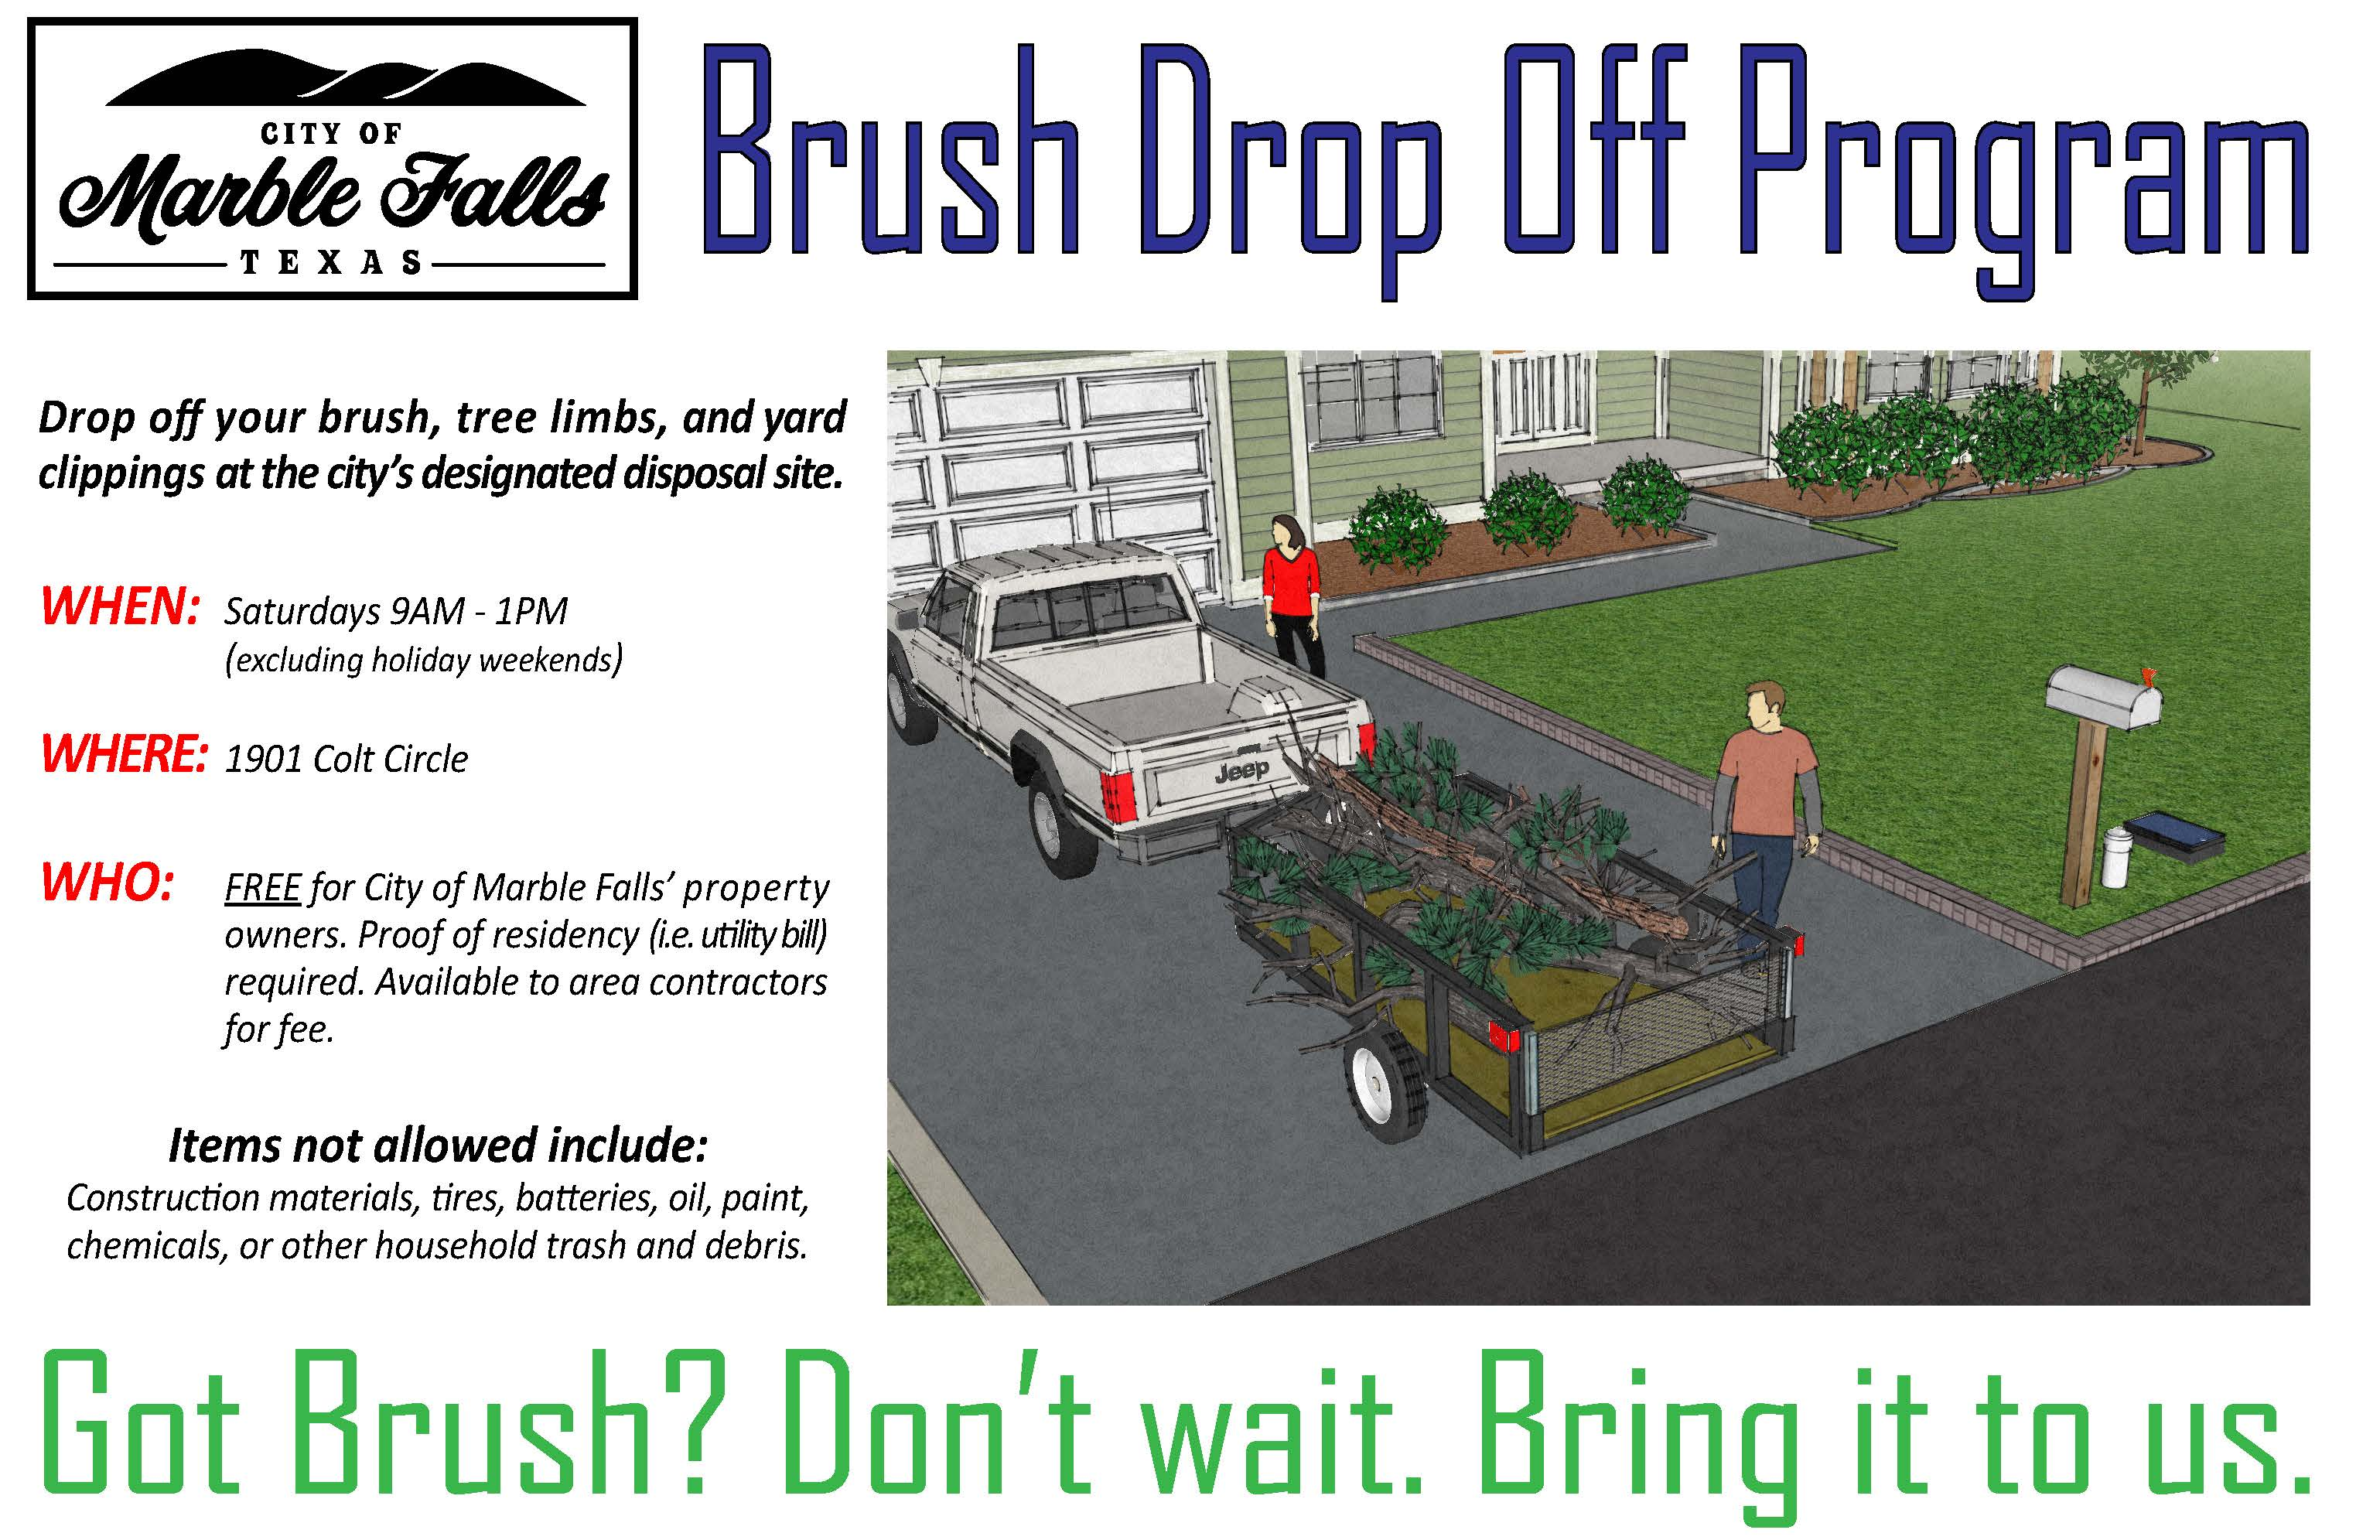 BRUSH DROP OFF